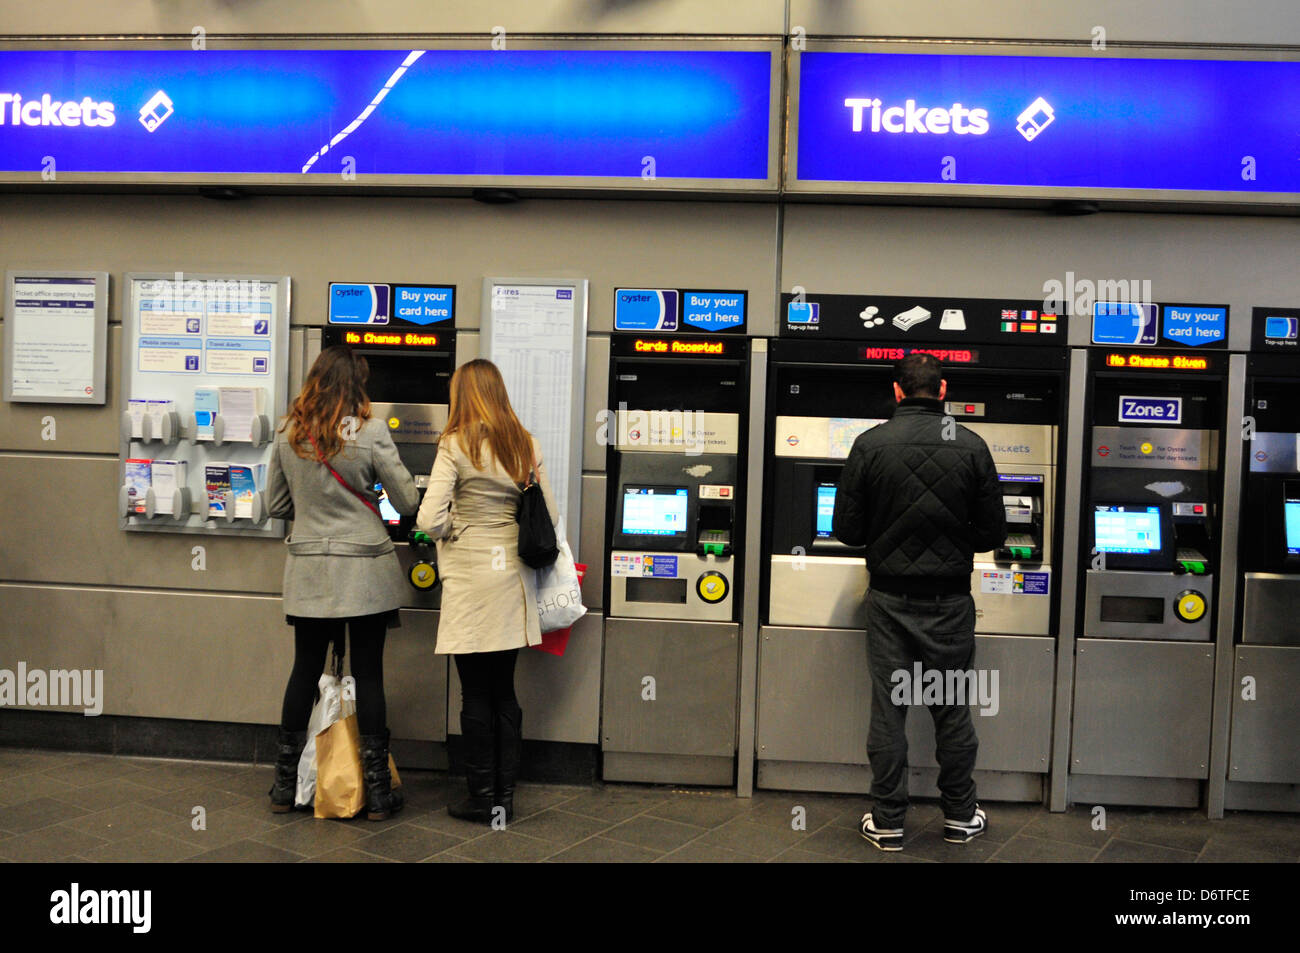 Commuters buy ticket at an Underground station in London, UK. Stock Photo